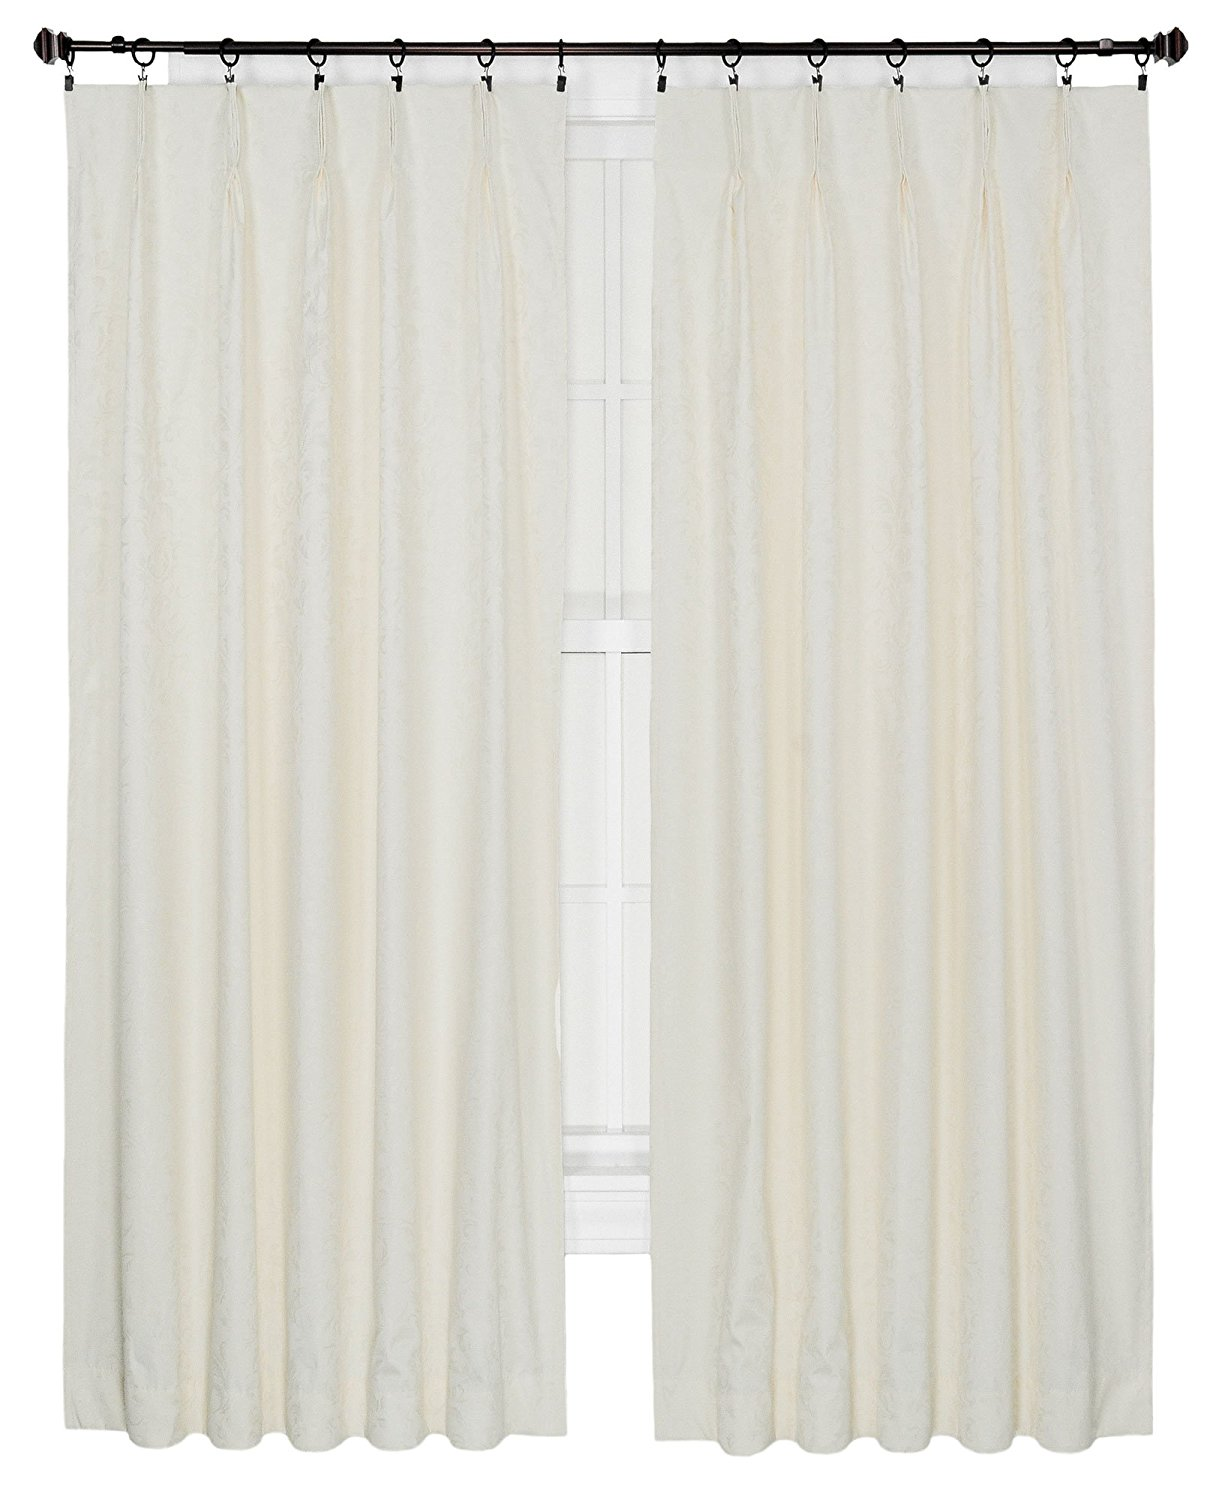 bedroom draperies curtain images design best drapes more curtains inch of innovative and com